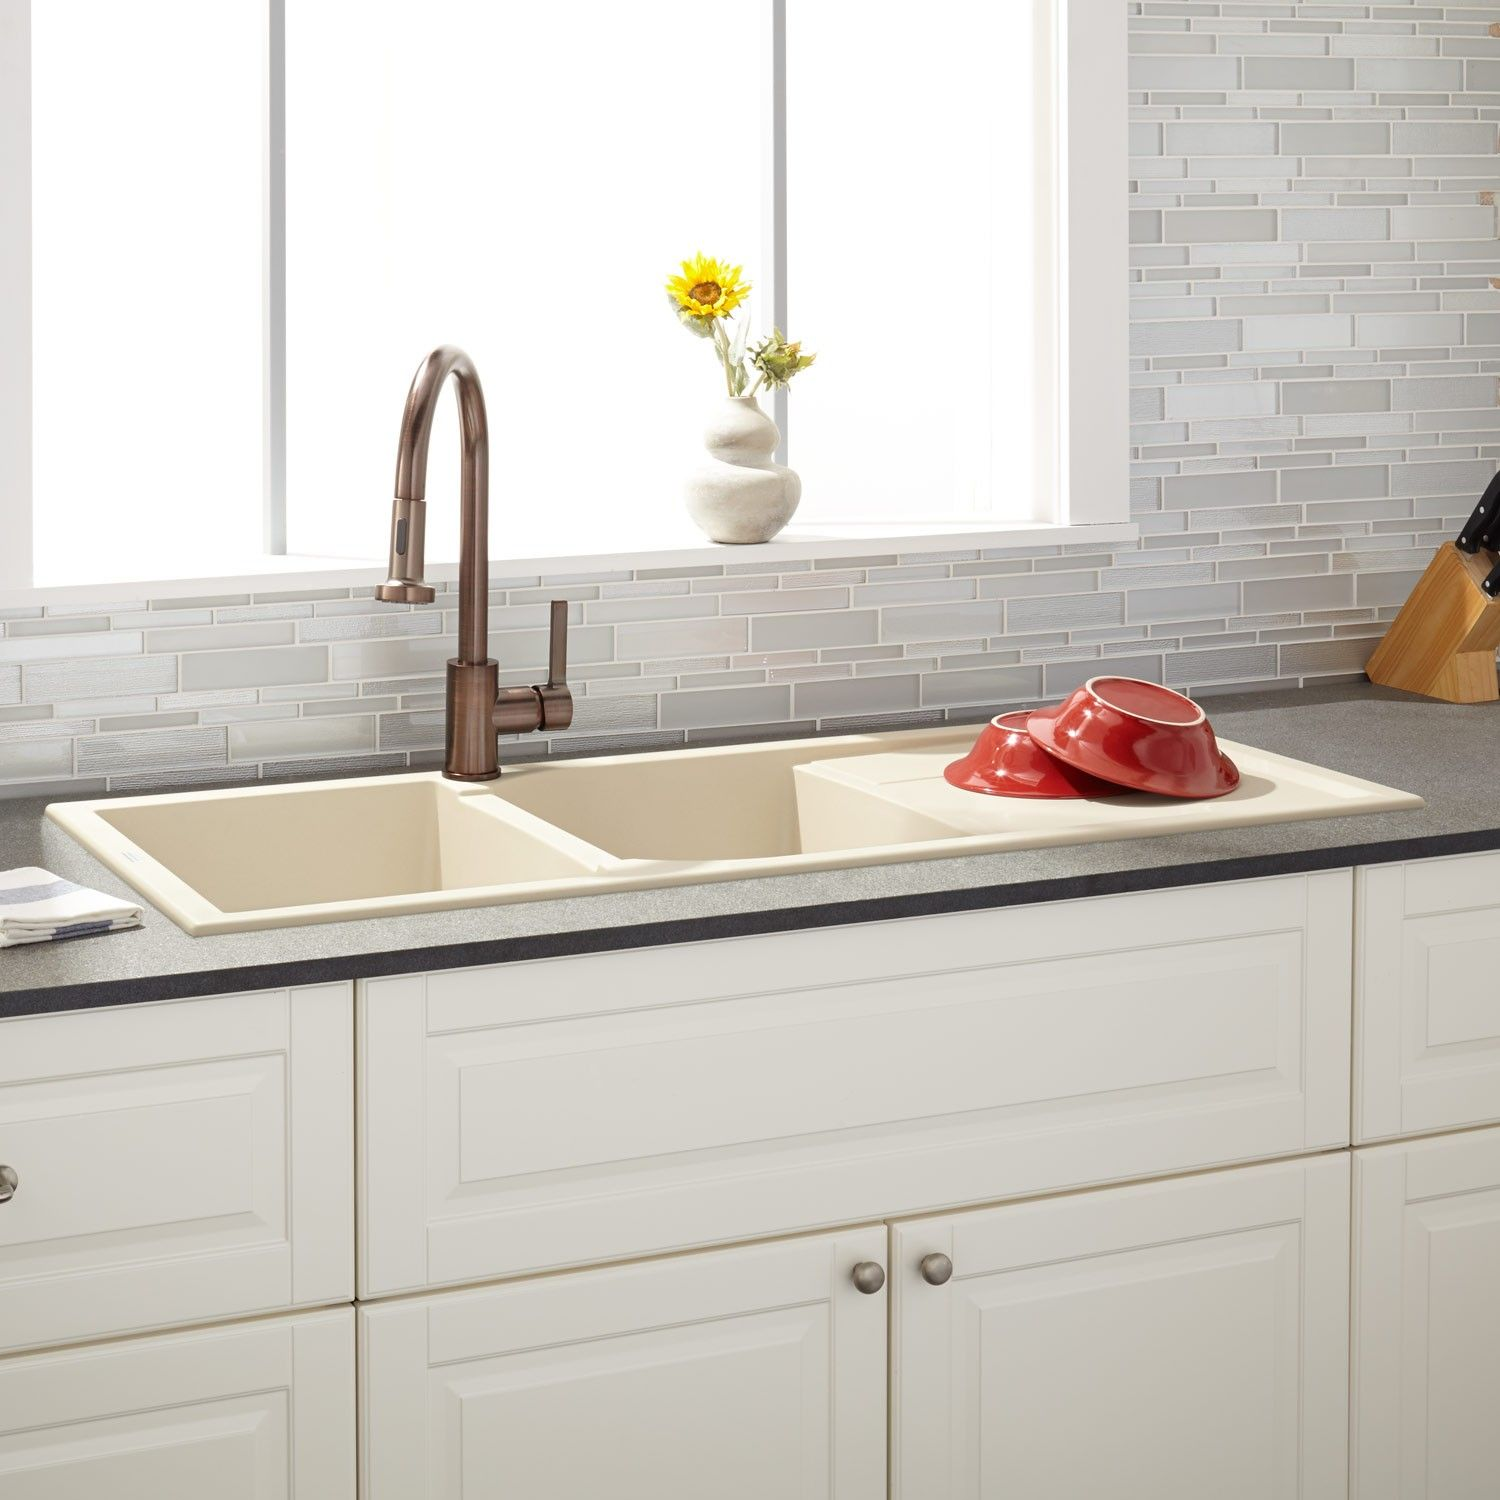 5 Drainboard Sinks That Will Have You Swooning  Sinks Kitchens Magnificent Kitchen Sinks With Drainboards Design Inspiration